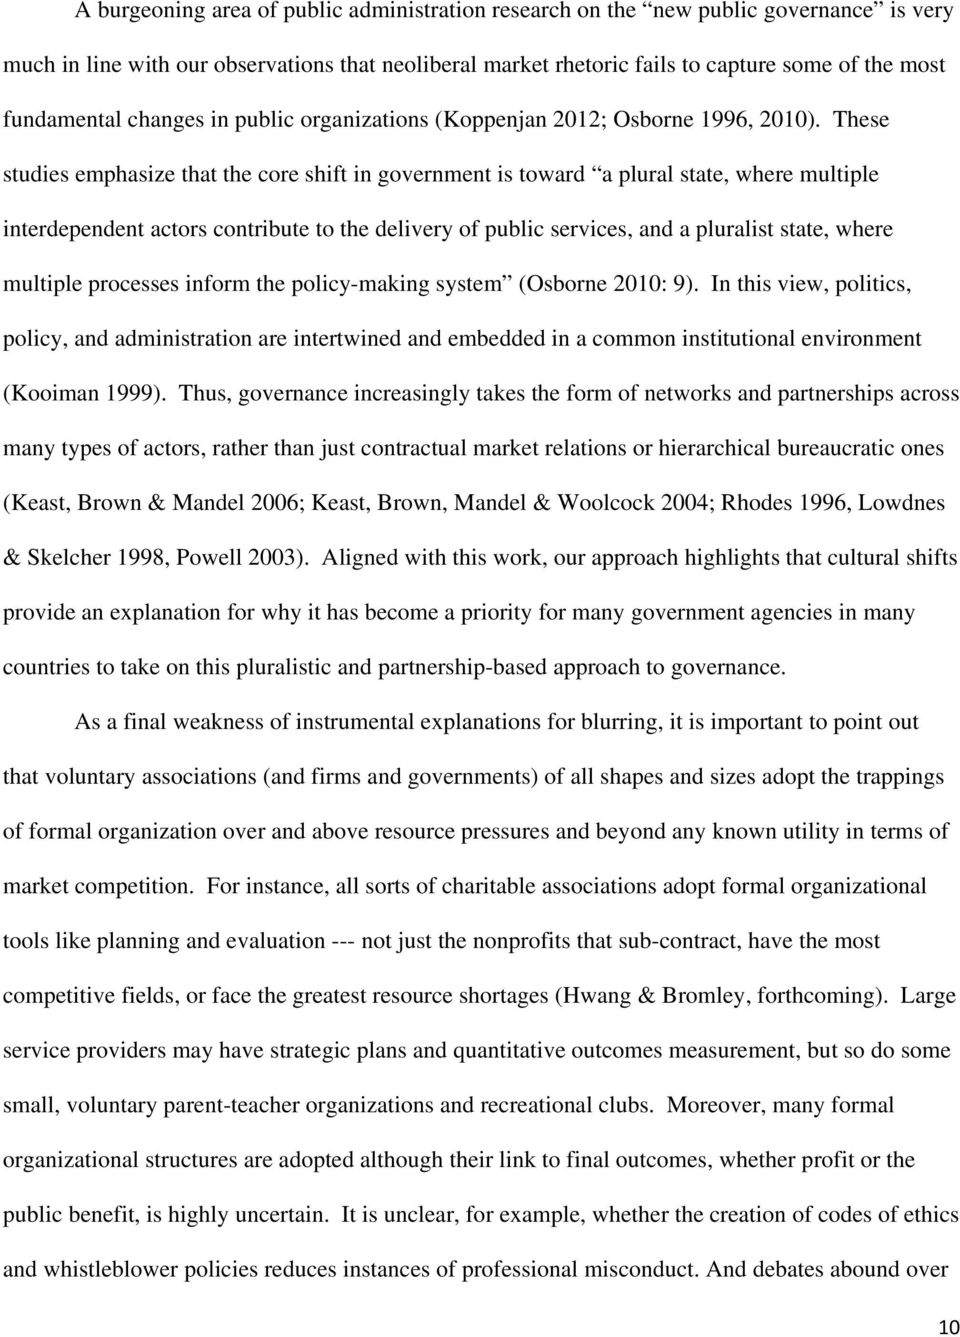 These studies emphasize that the core shift in government is toward a plural state, where multiple interdependent actors contribute to the delivery of public services, and a pluralist state, where